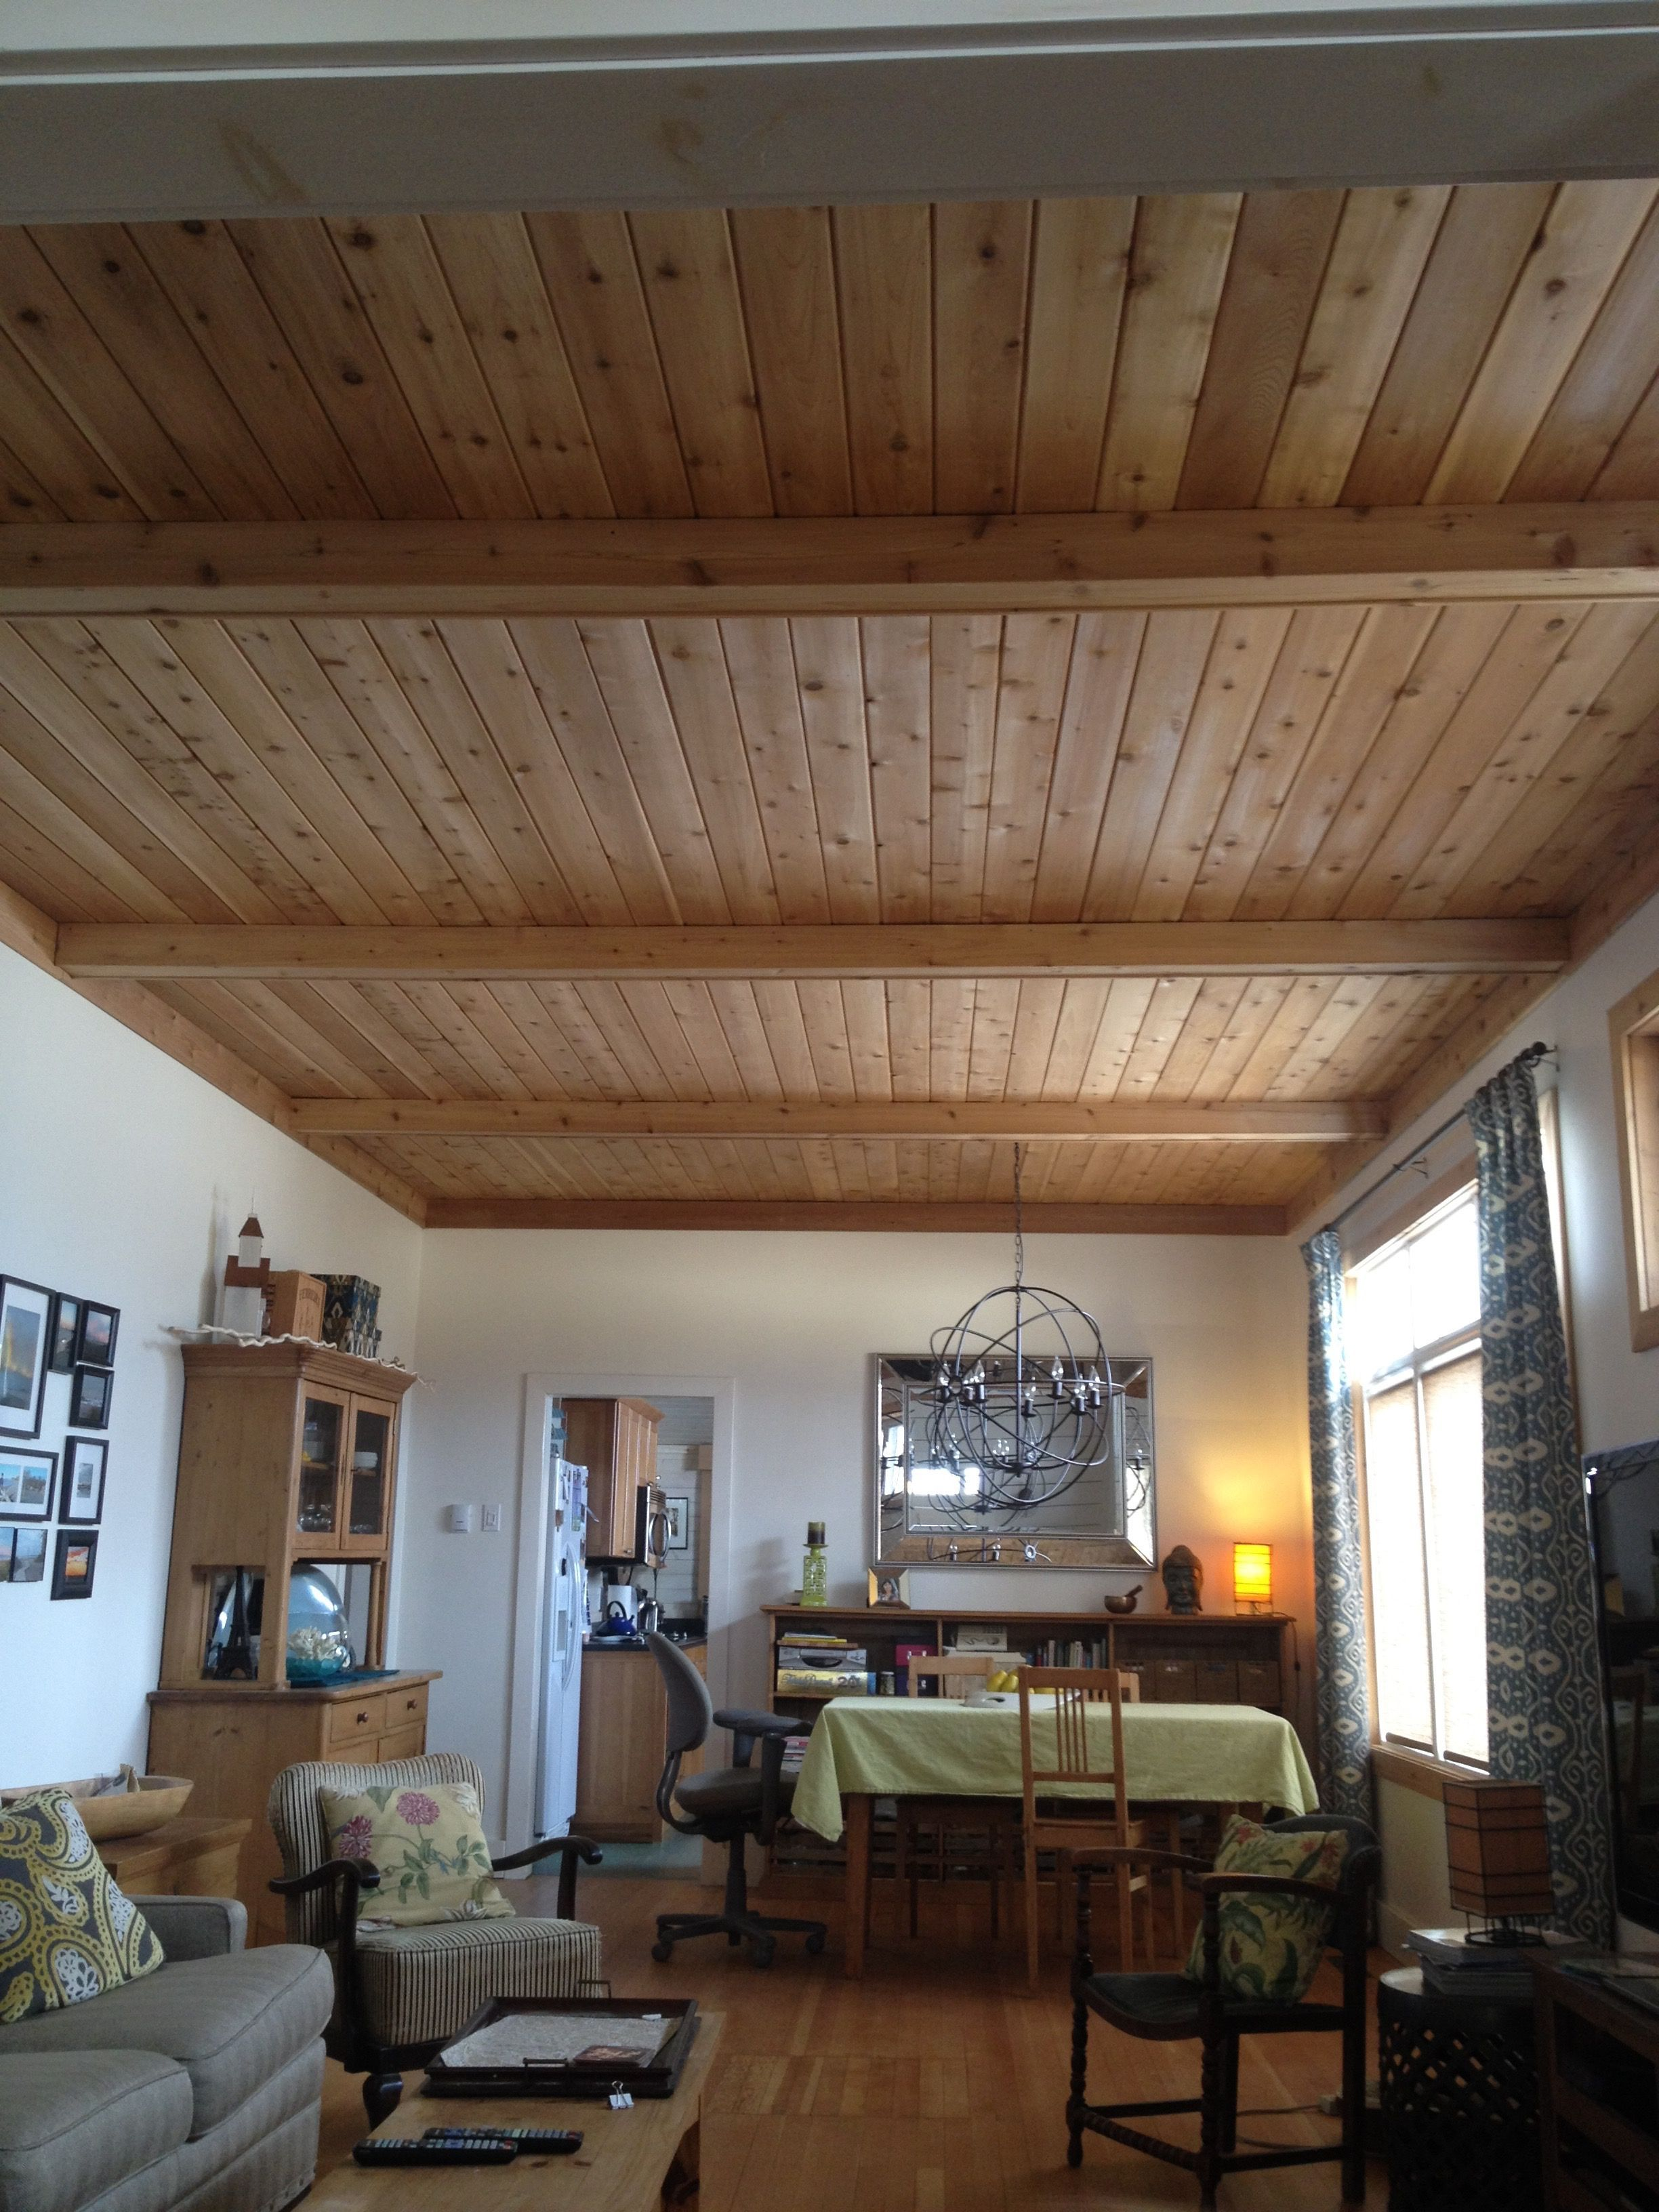 Ceiling cedar plank ceiling in cottage with false beams